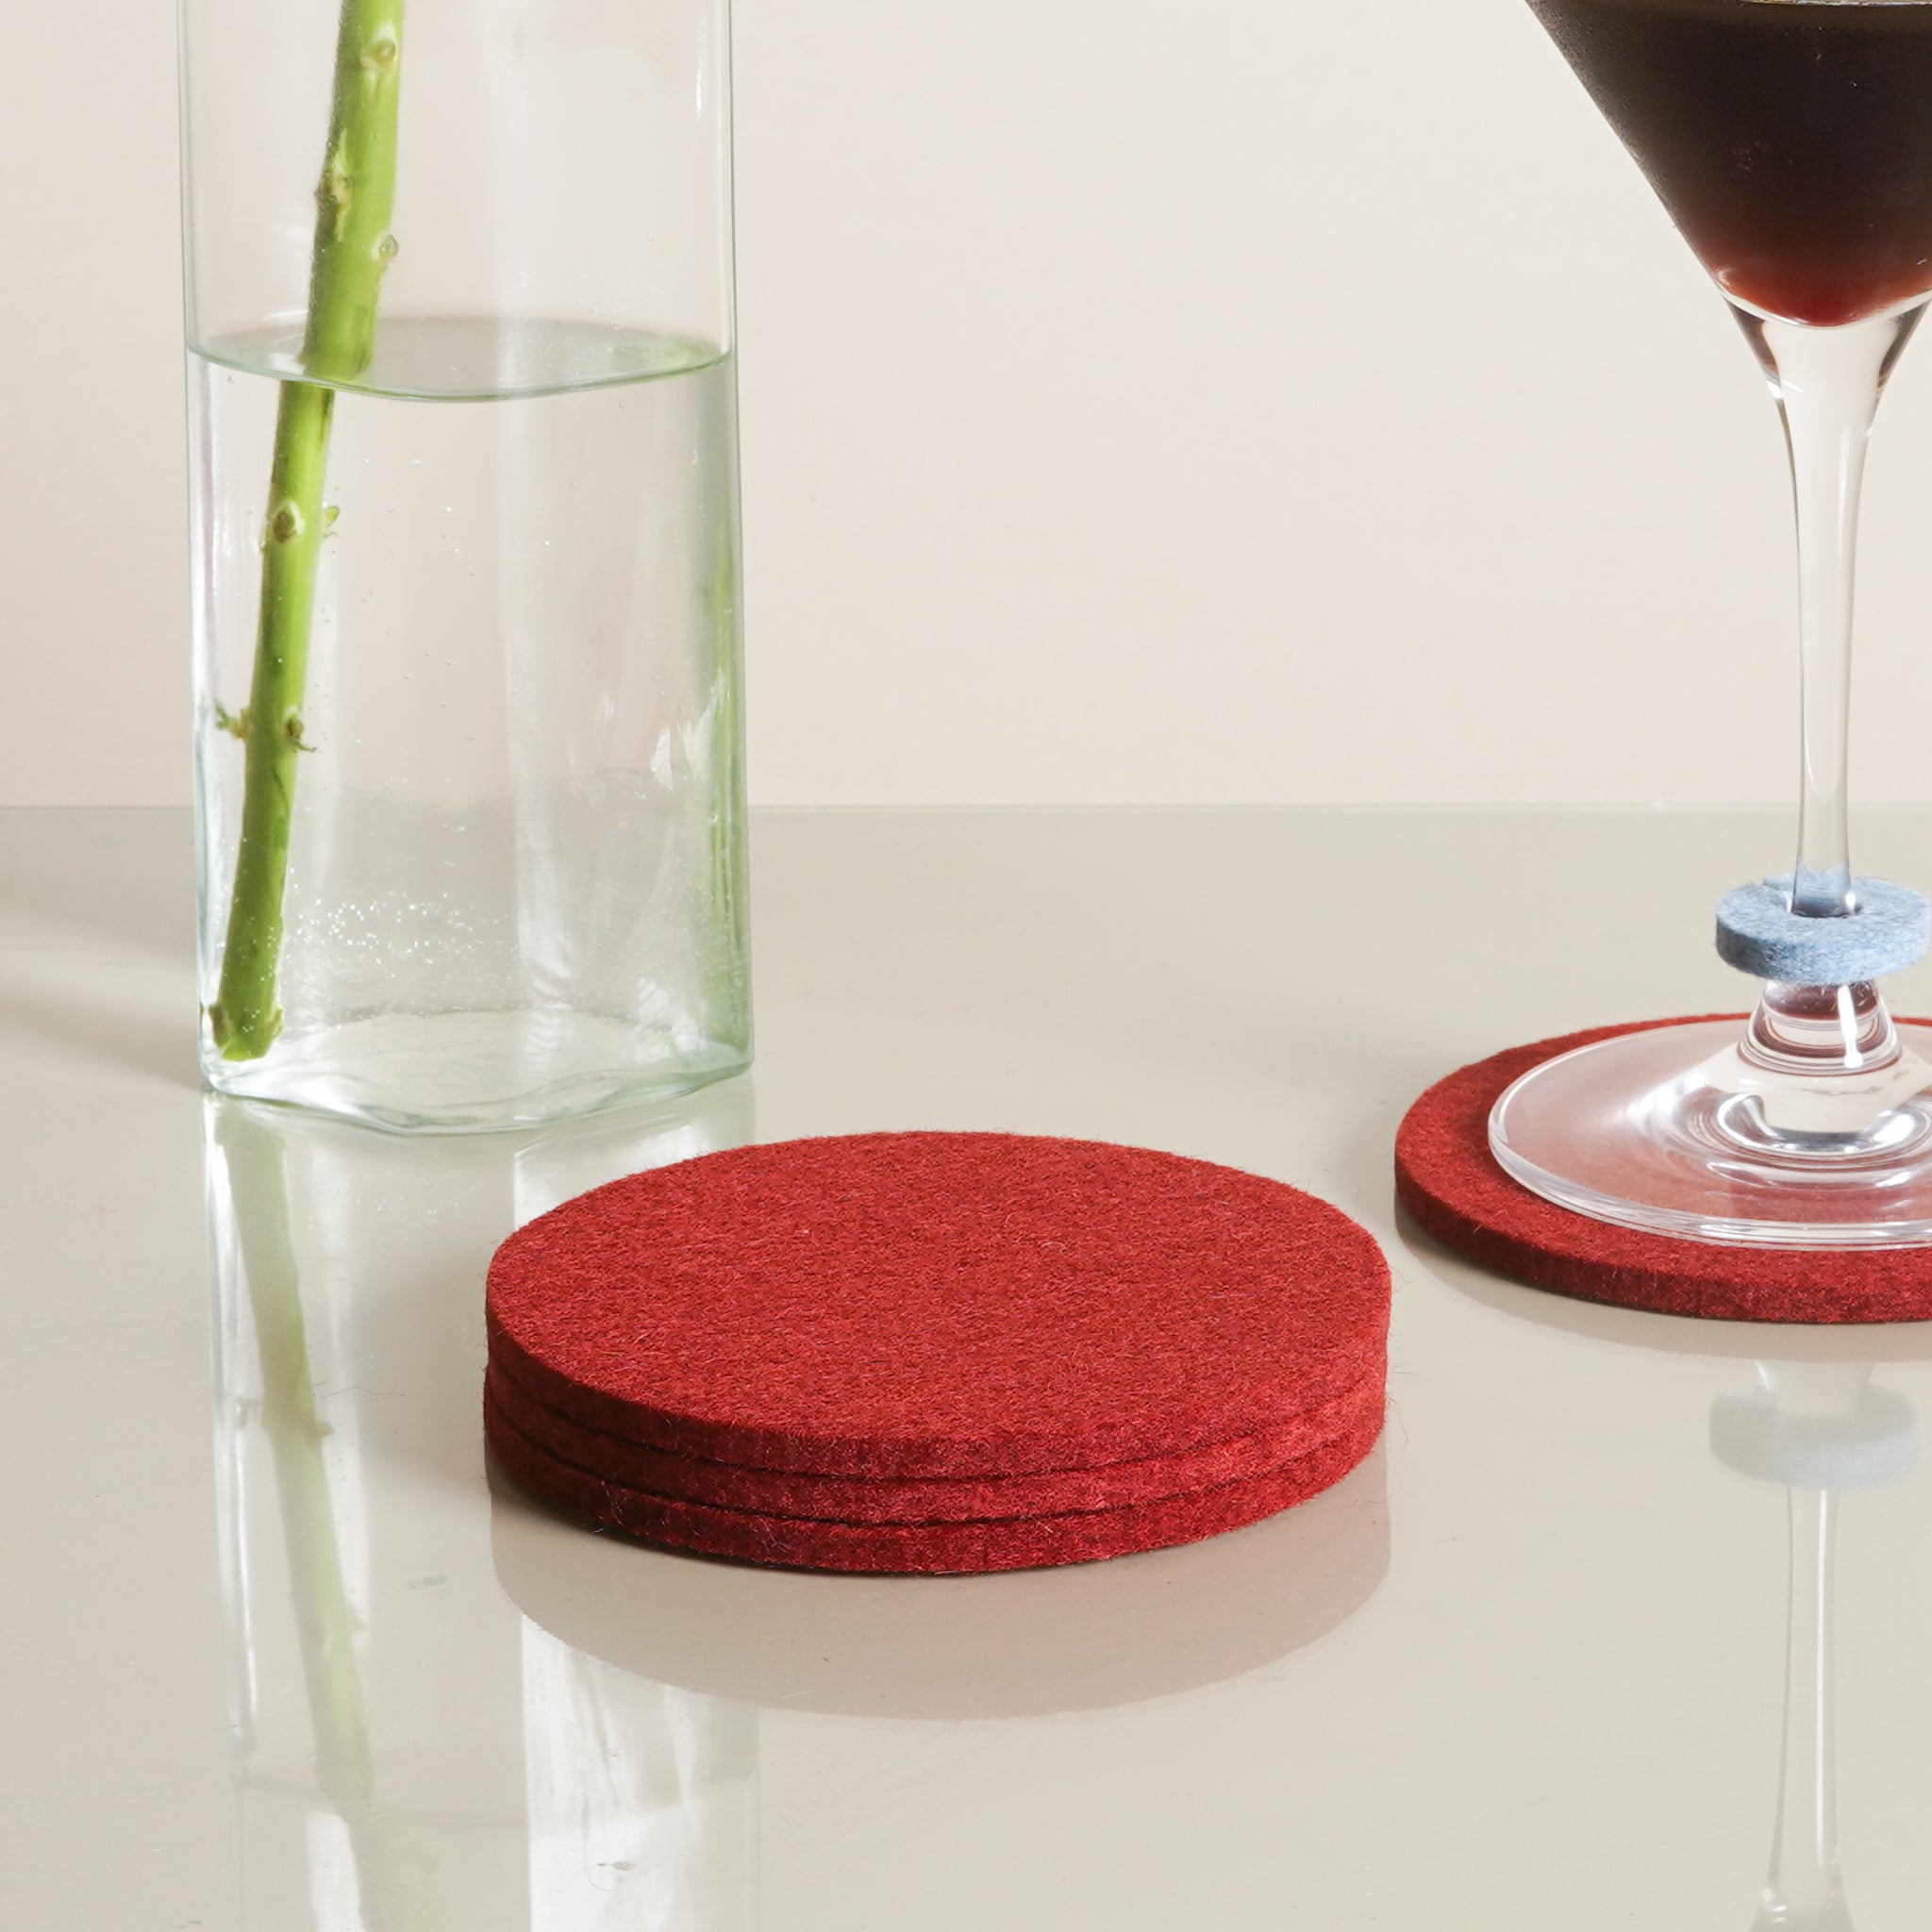 The Bierfilzl Round Felt Coasters in rosewood by Graf Lantz from Commonplace design shop.